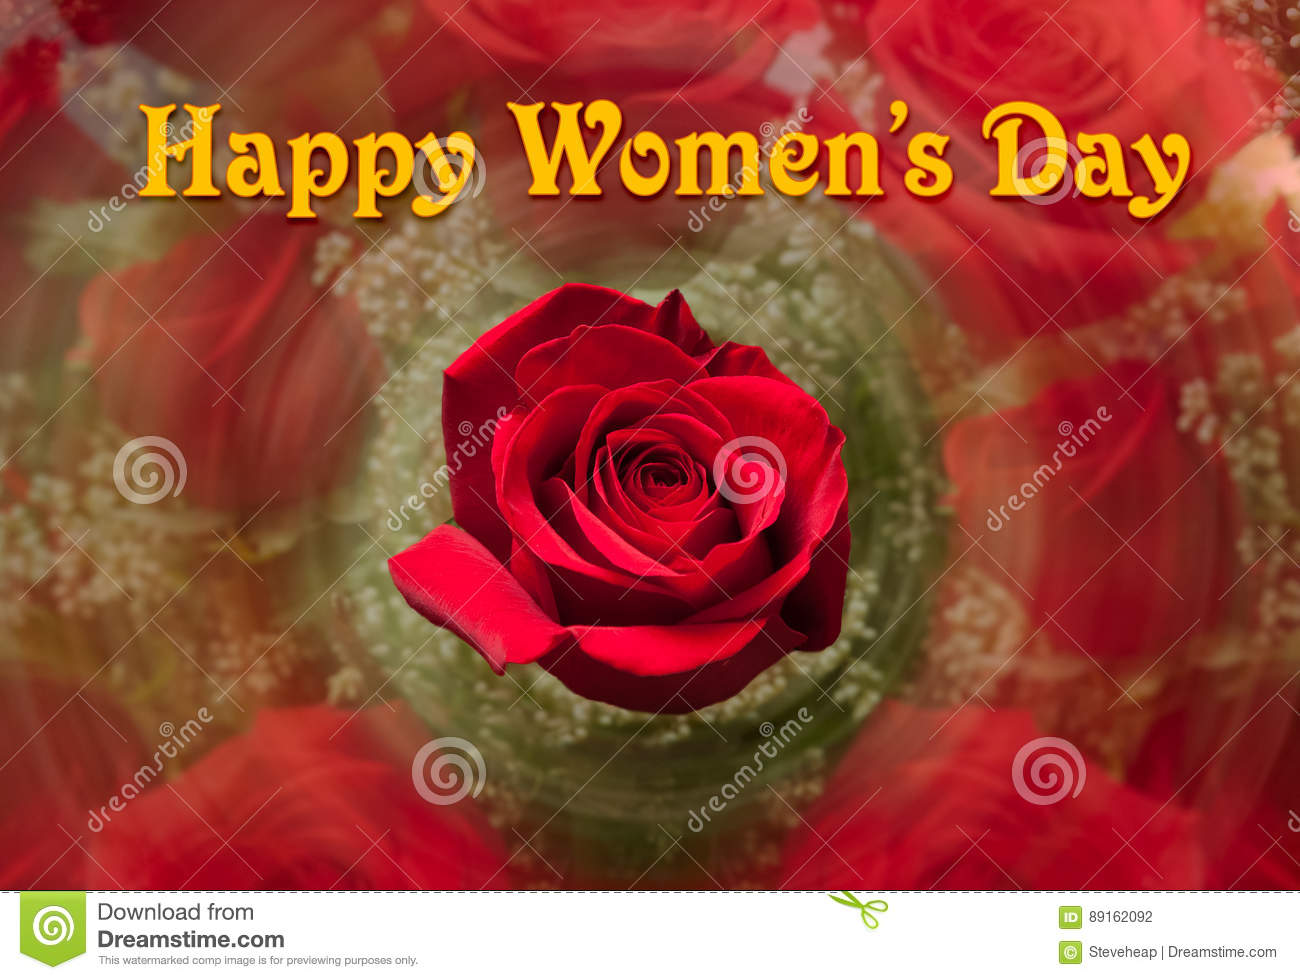 Happy Womens Day background with red rose